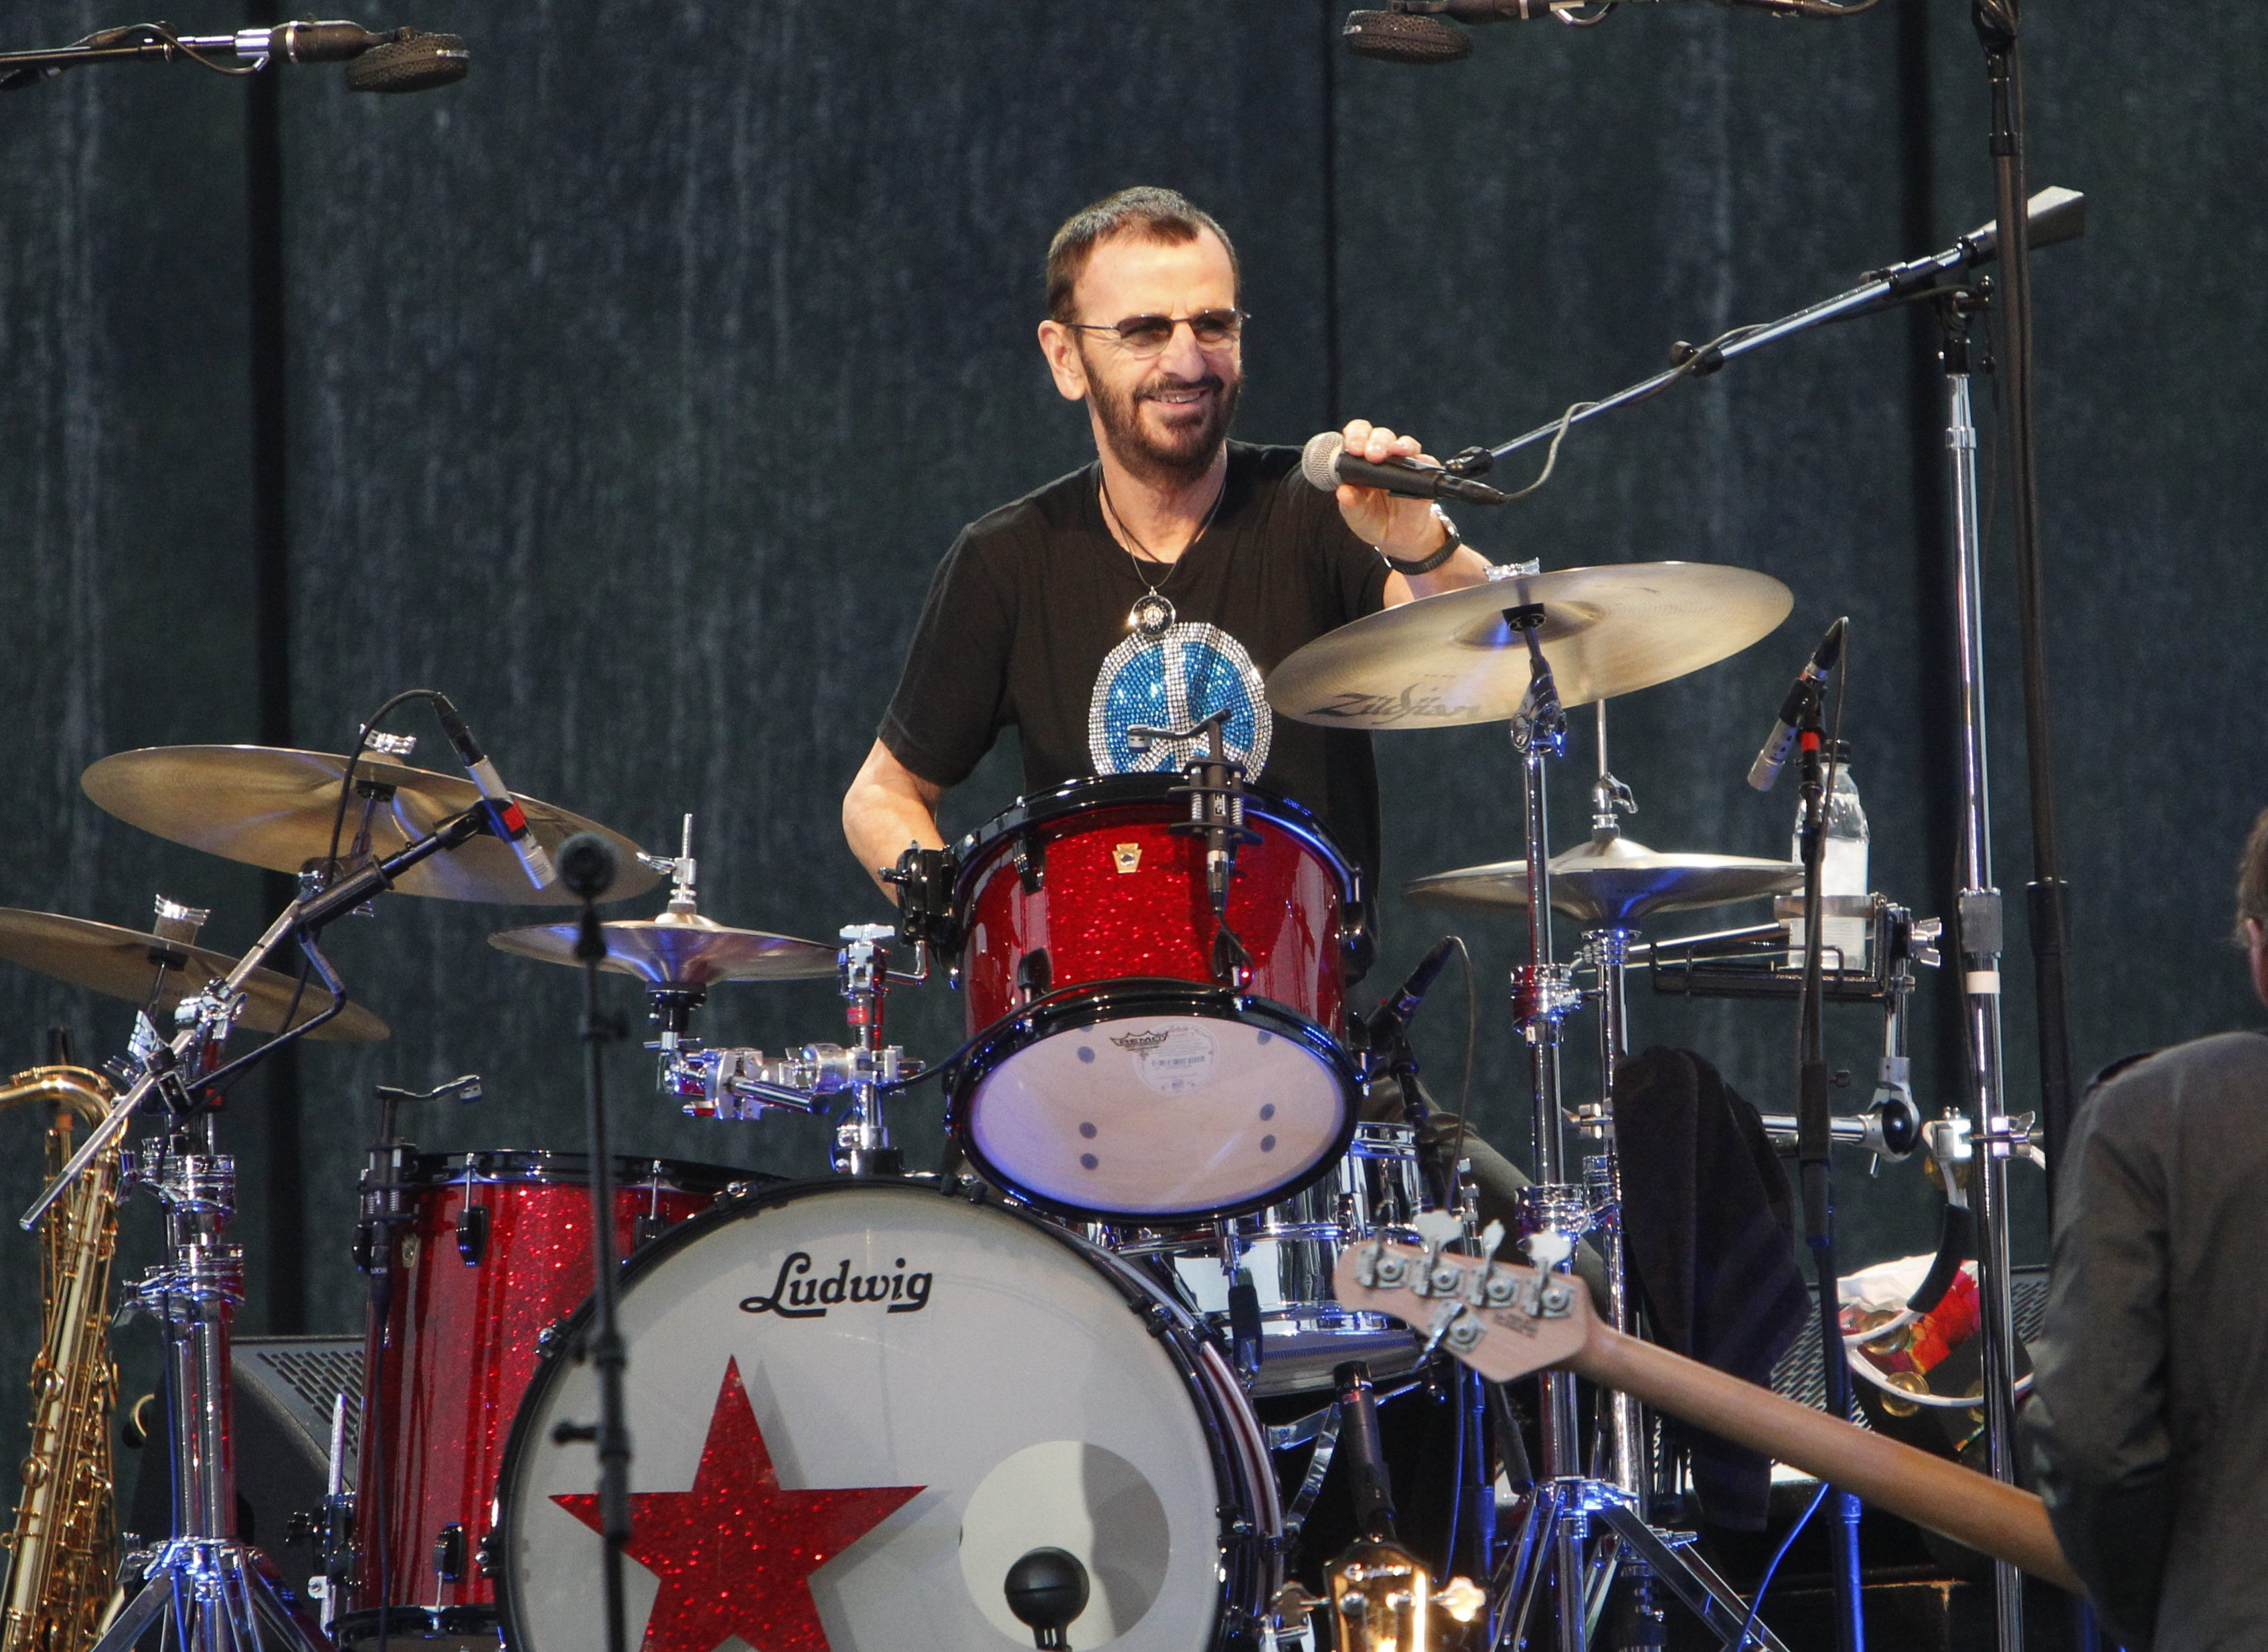 Ringo Starr and his All-Starr Band performed at Artpark's Tuesday in the Park, Tuesday, June 24, 2014. There was a half-hour rain delay as the clouds opened up shortly before they started. Then the rain passed and the show went  on.  (Sharon Cantillon/Buffalo News)